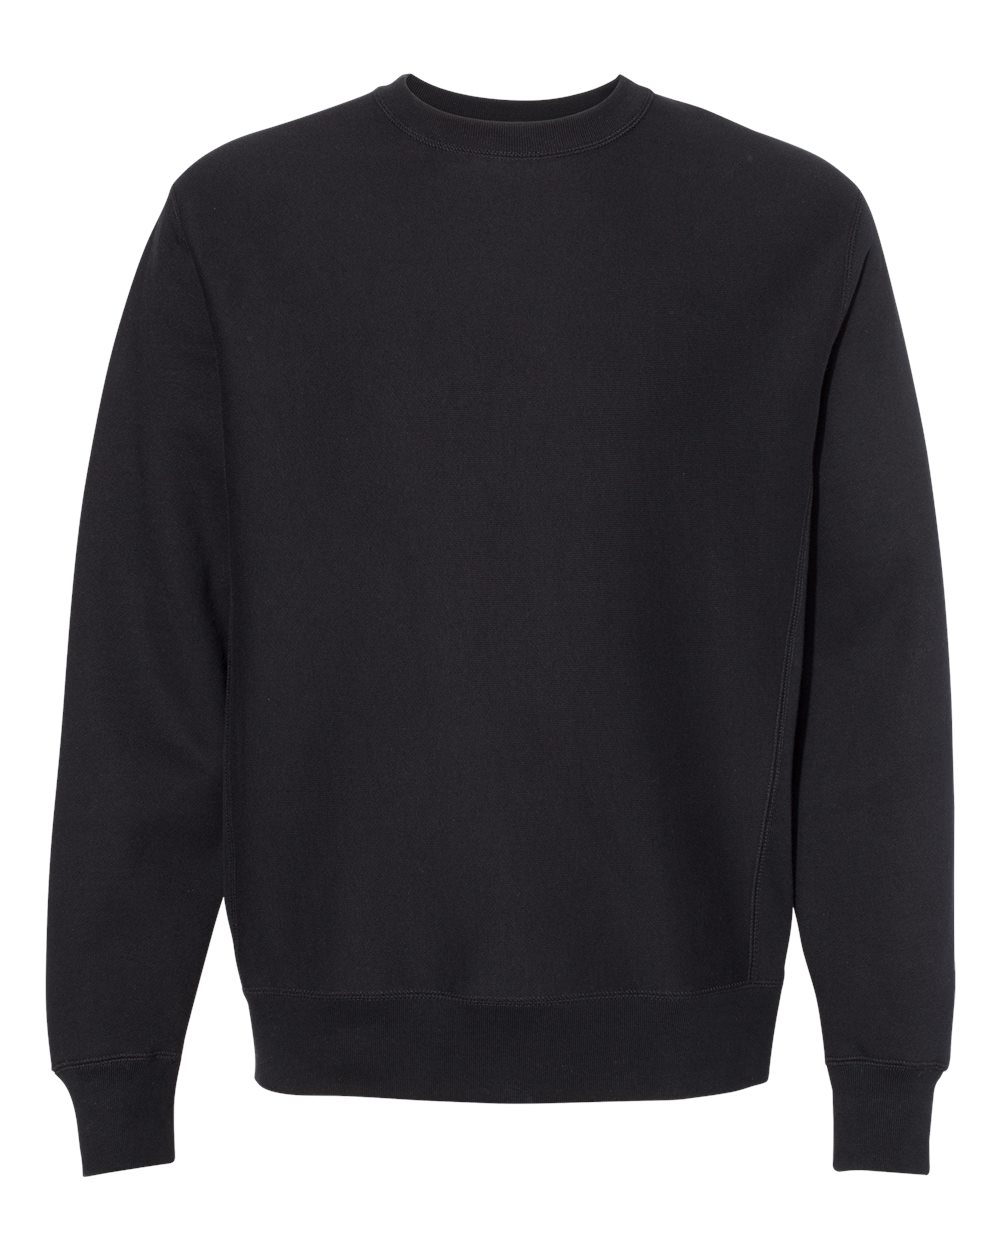 Independent-Trading-Co-Mens-Premium-Heavyweight-Cross-Grain-Sweatshirt-IND5000C thumbnail 9